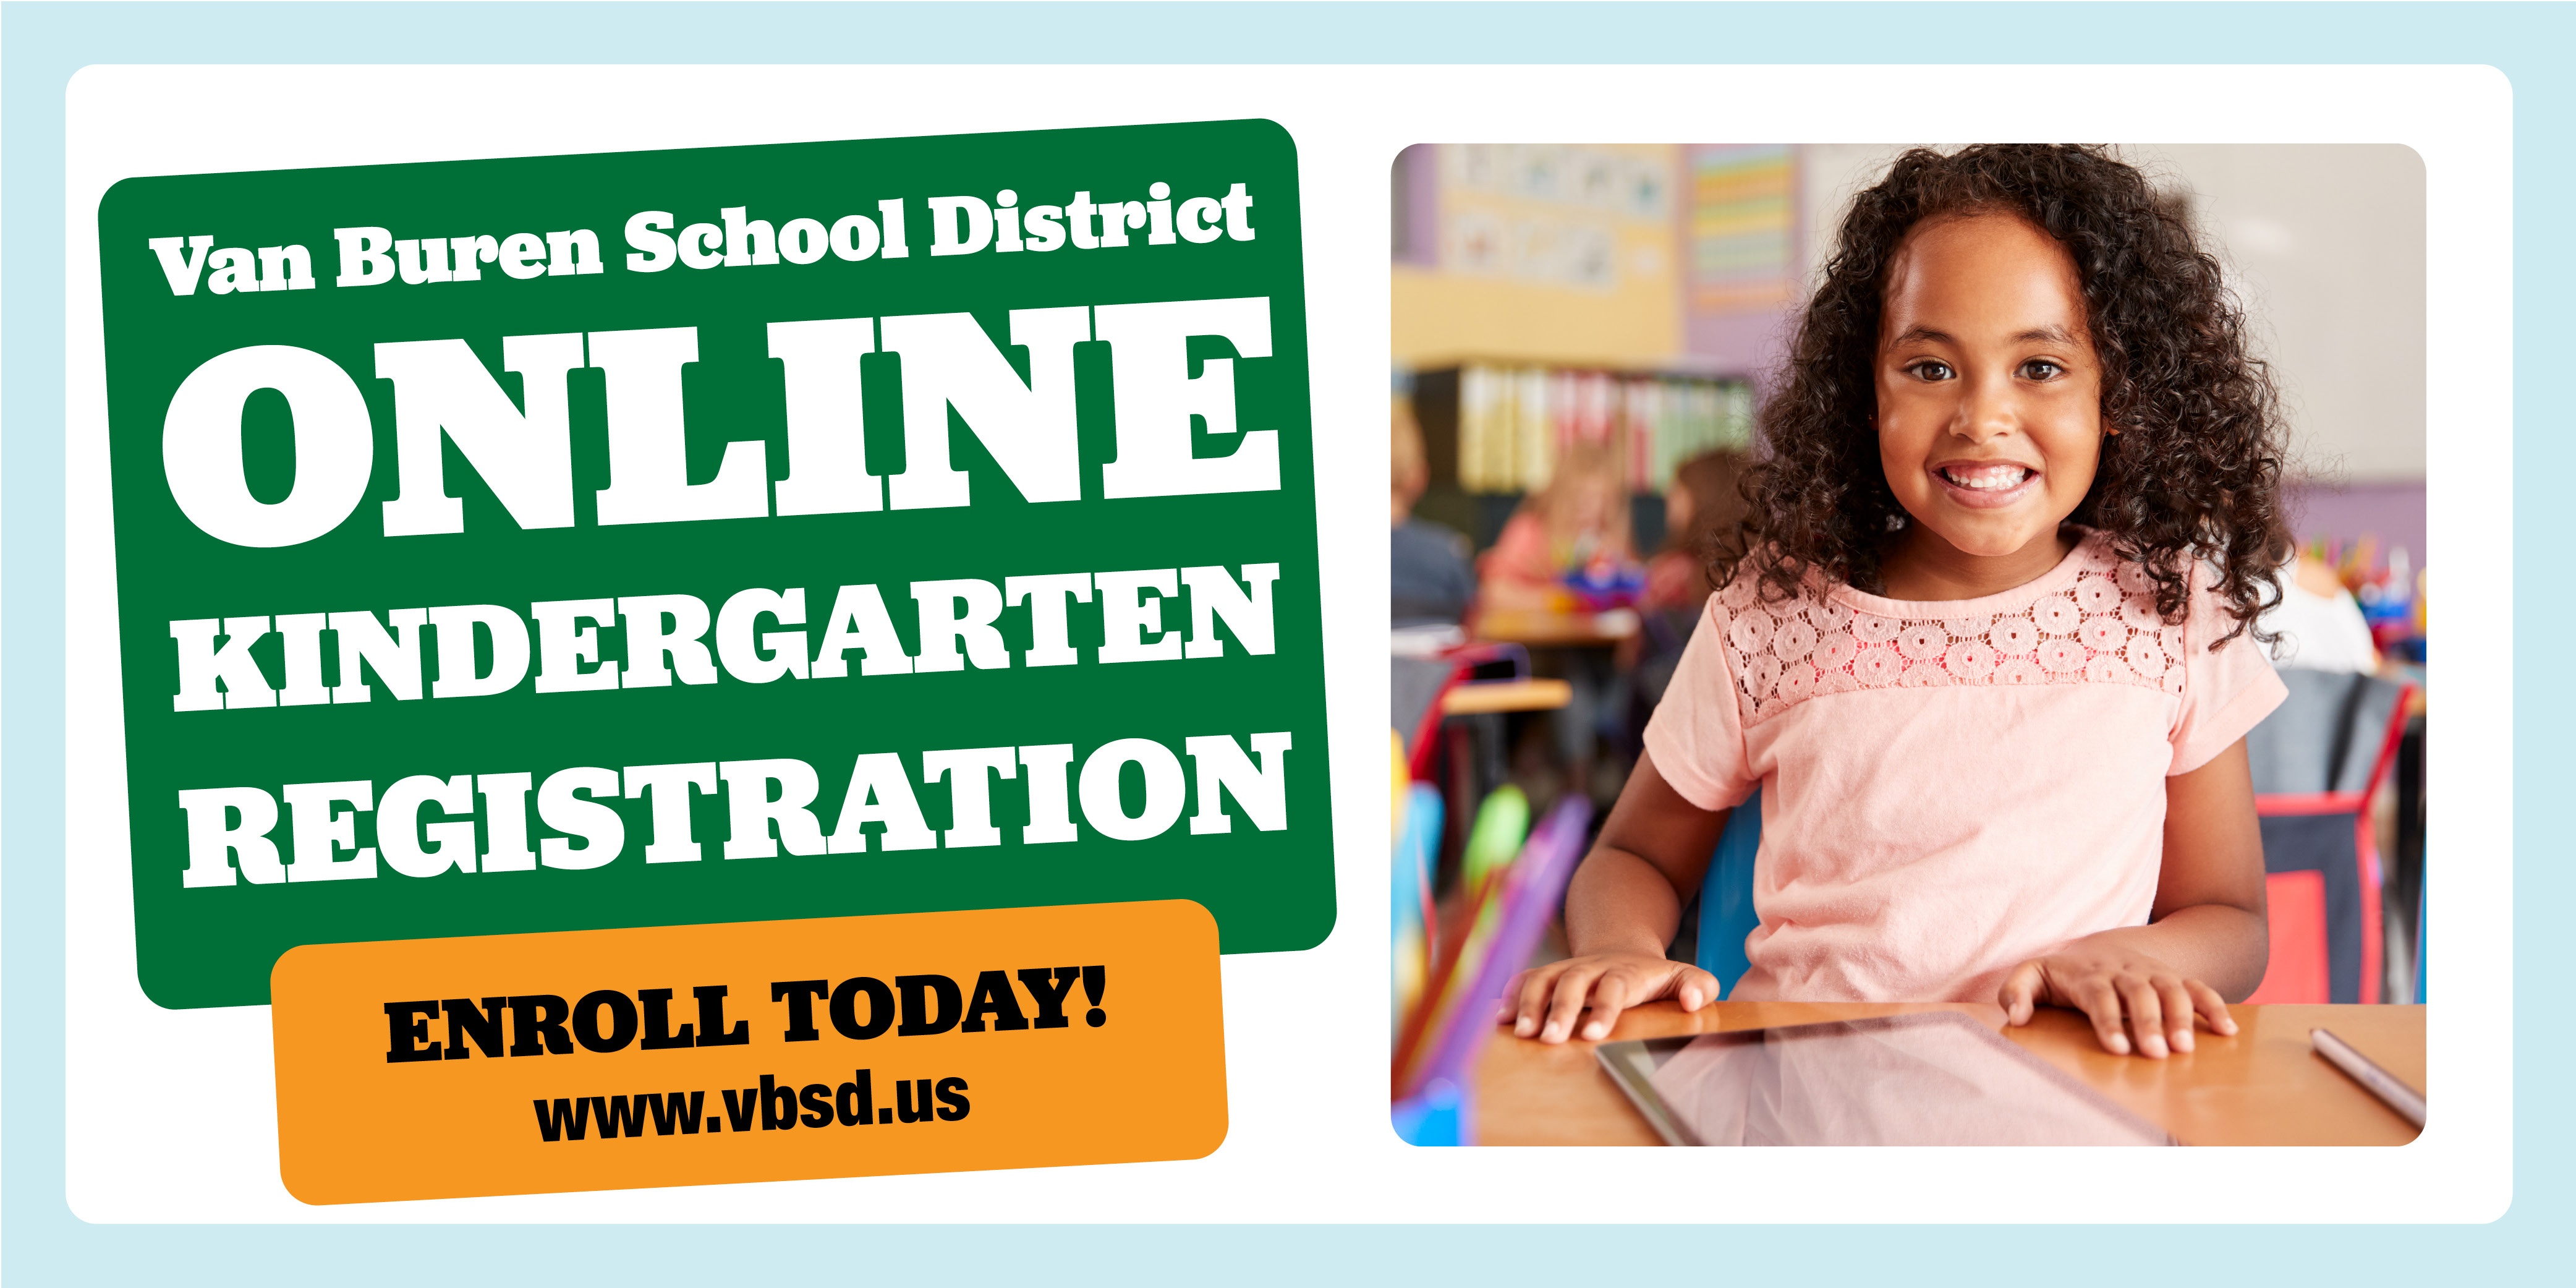 Register for Kindergarten by July 31